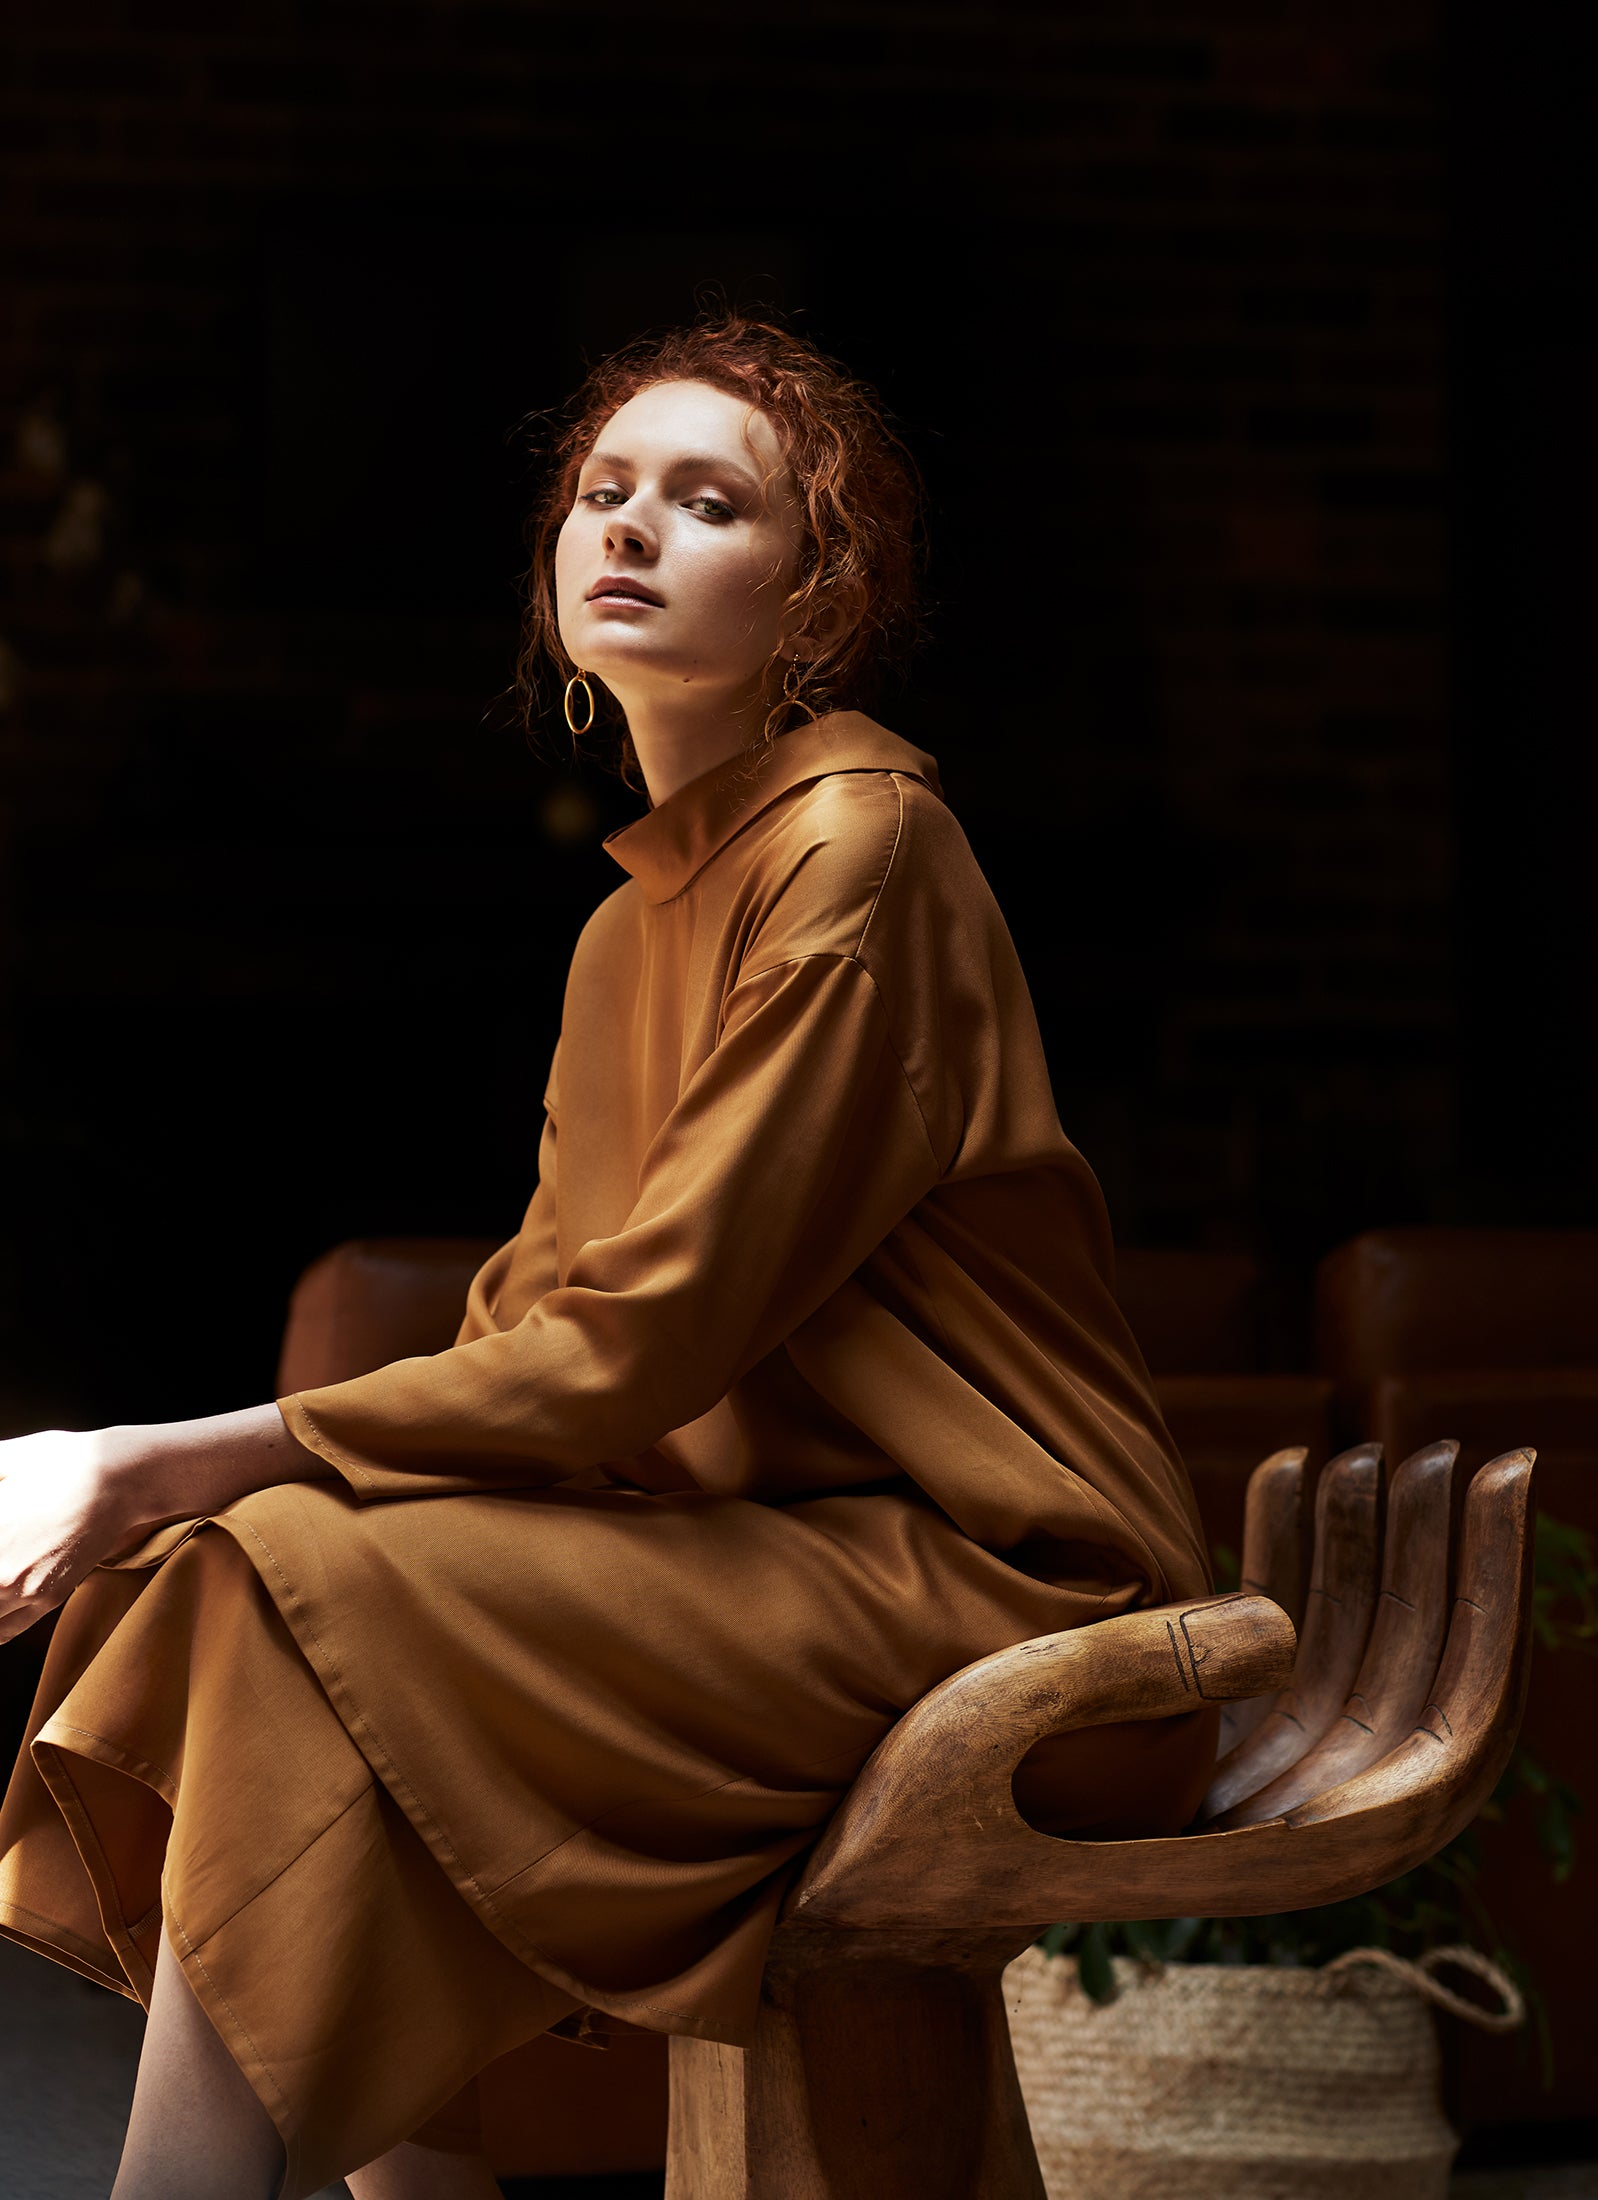 keegan AW19 Woodland Campaign Ethical Fashion Made in Melbourne Australia Mustard Gold Dress Hand Chair